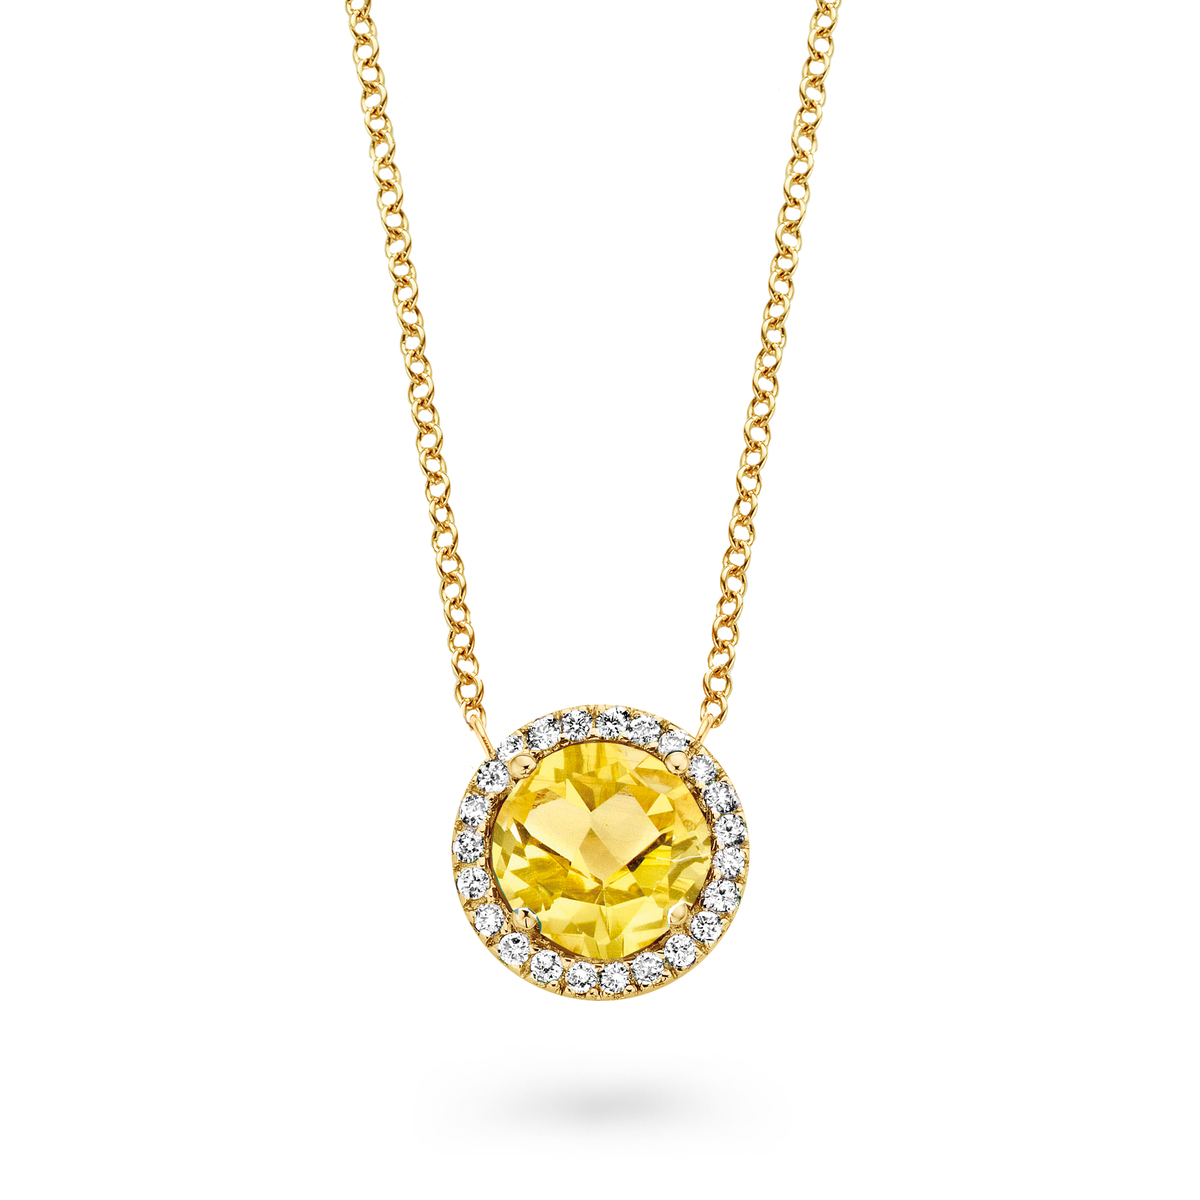 etna necklace in yellow gold